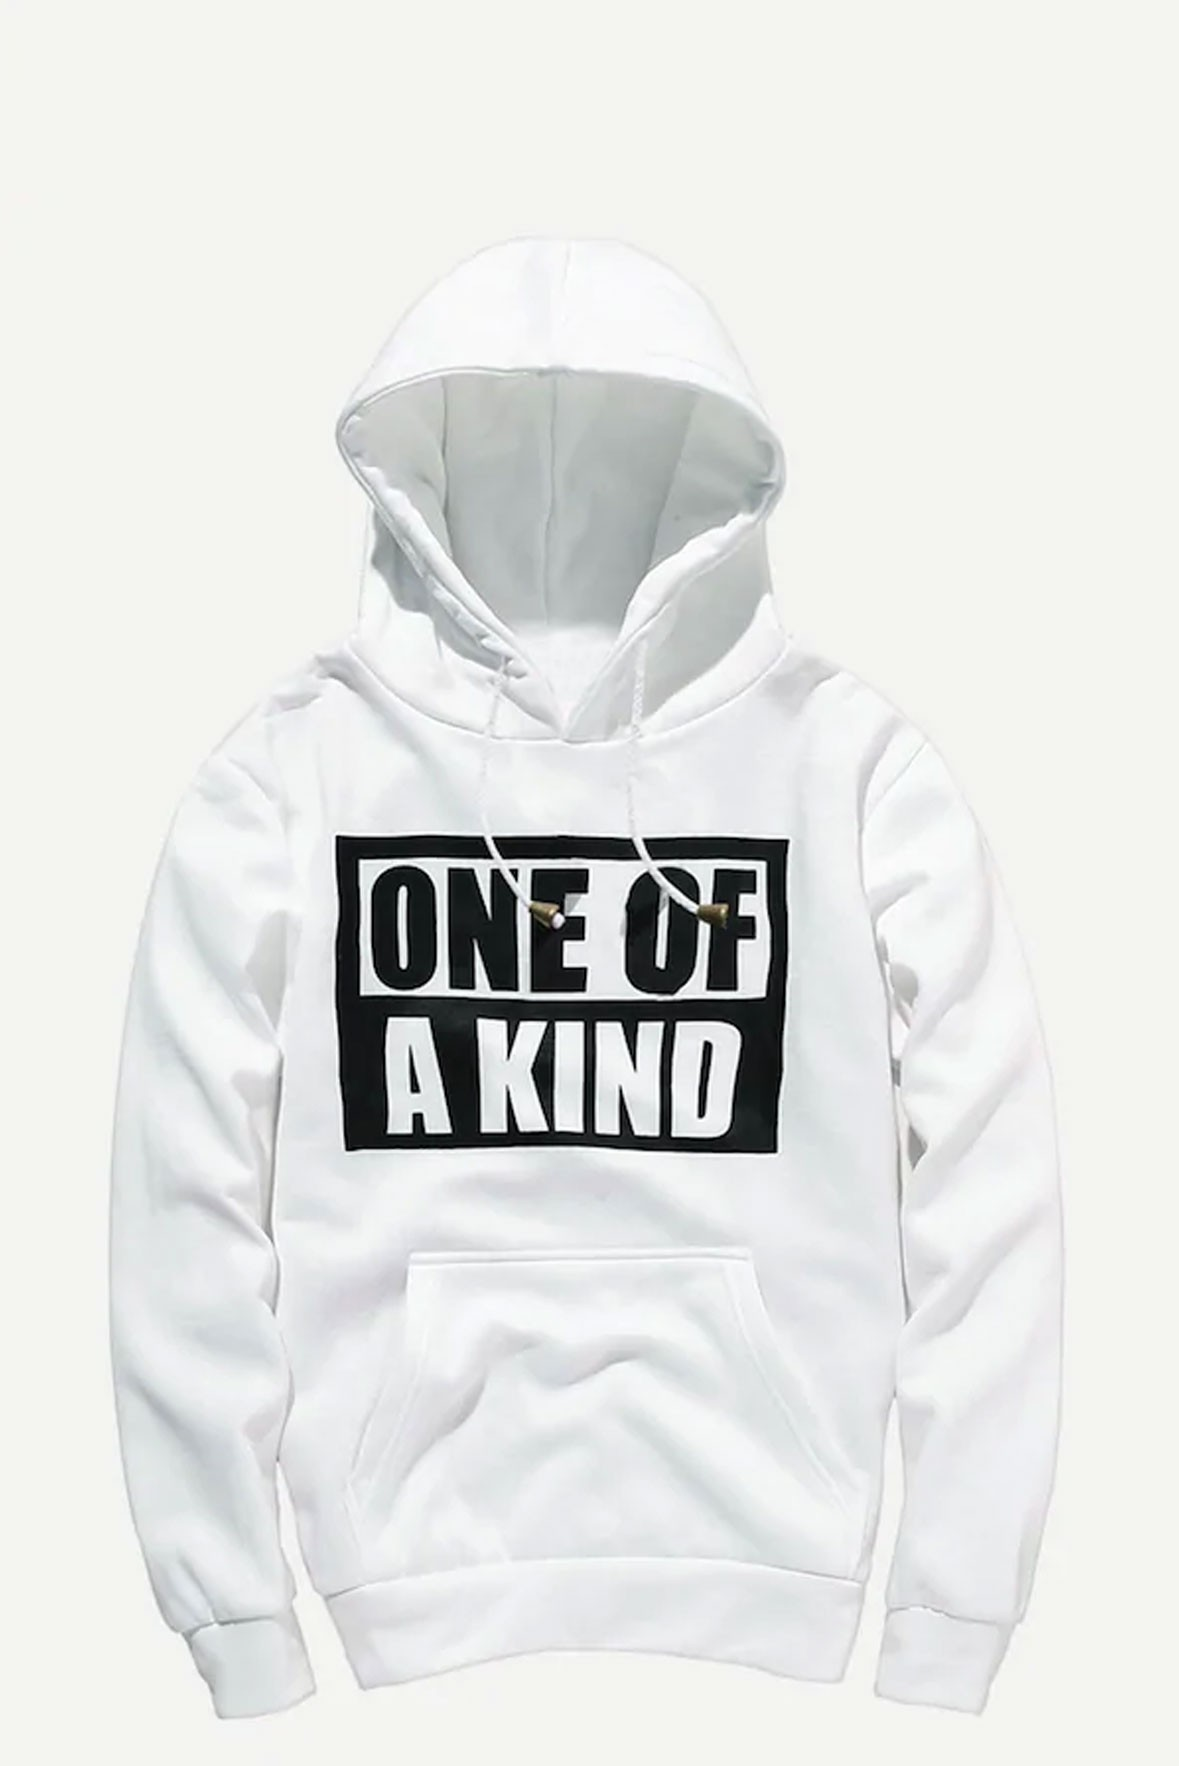 One of a kind white hoodie